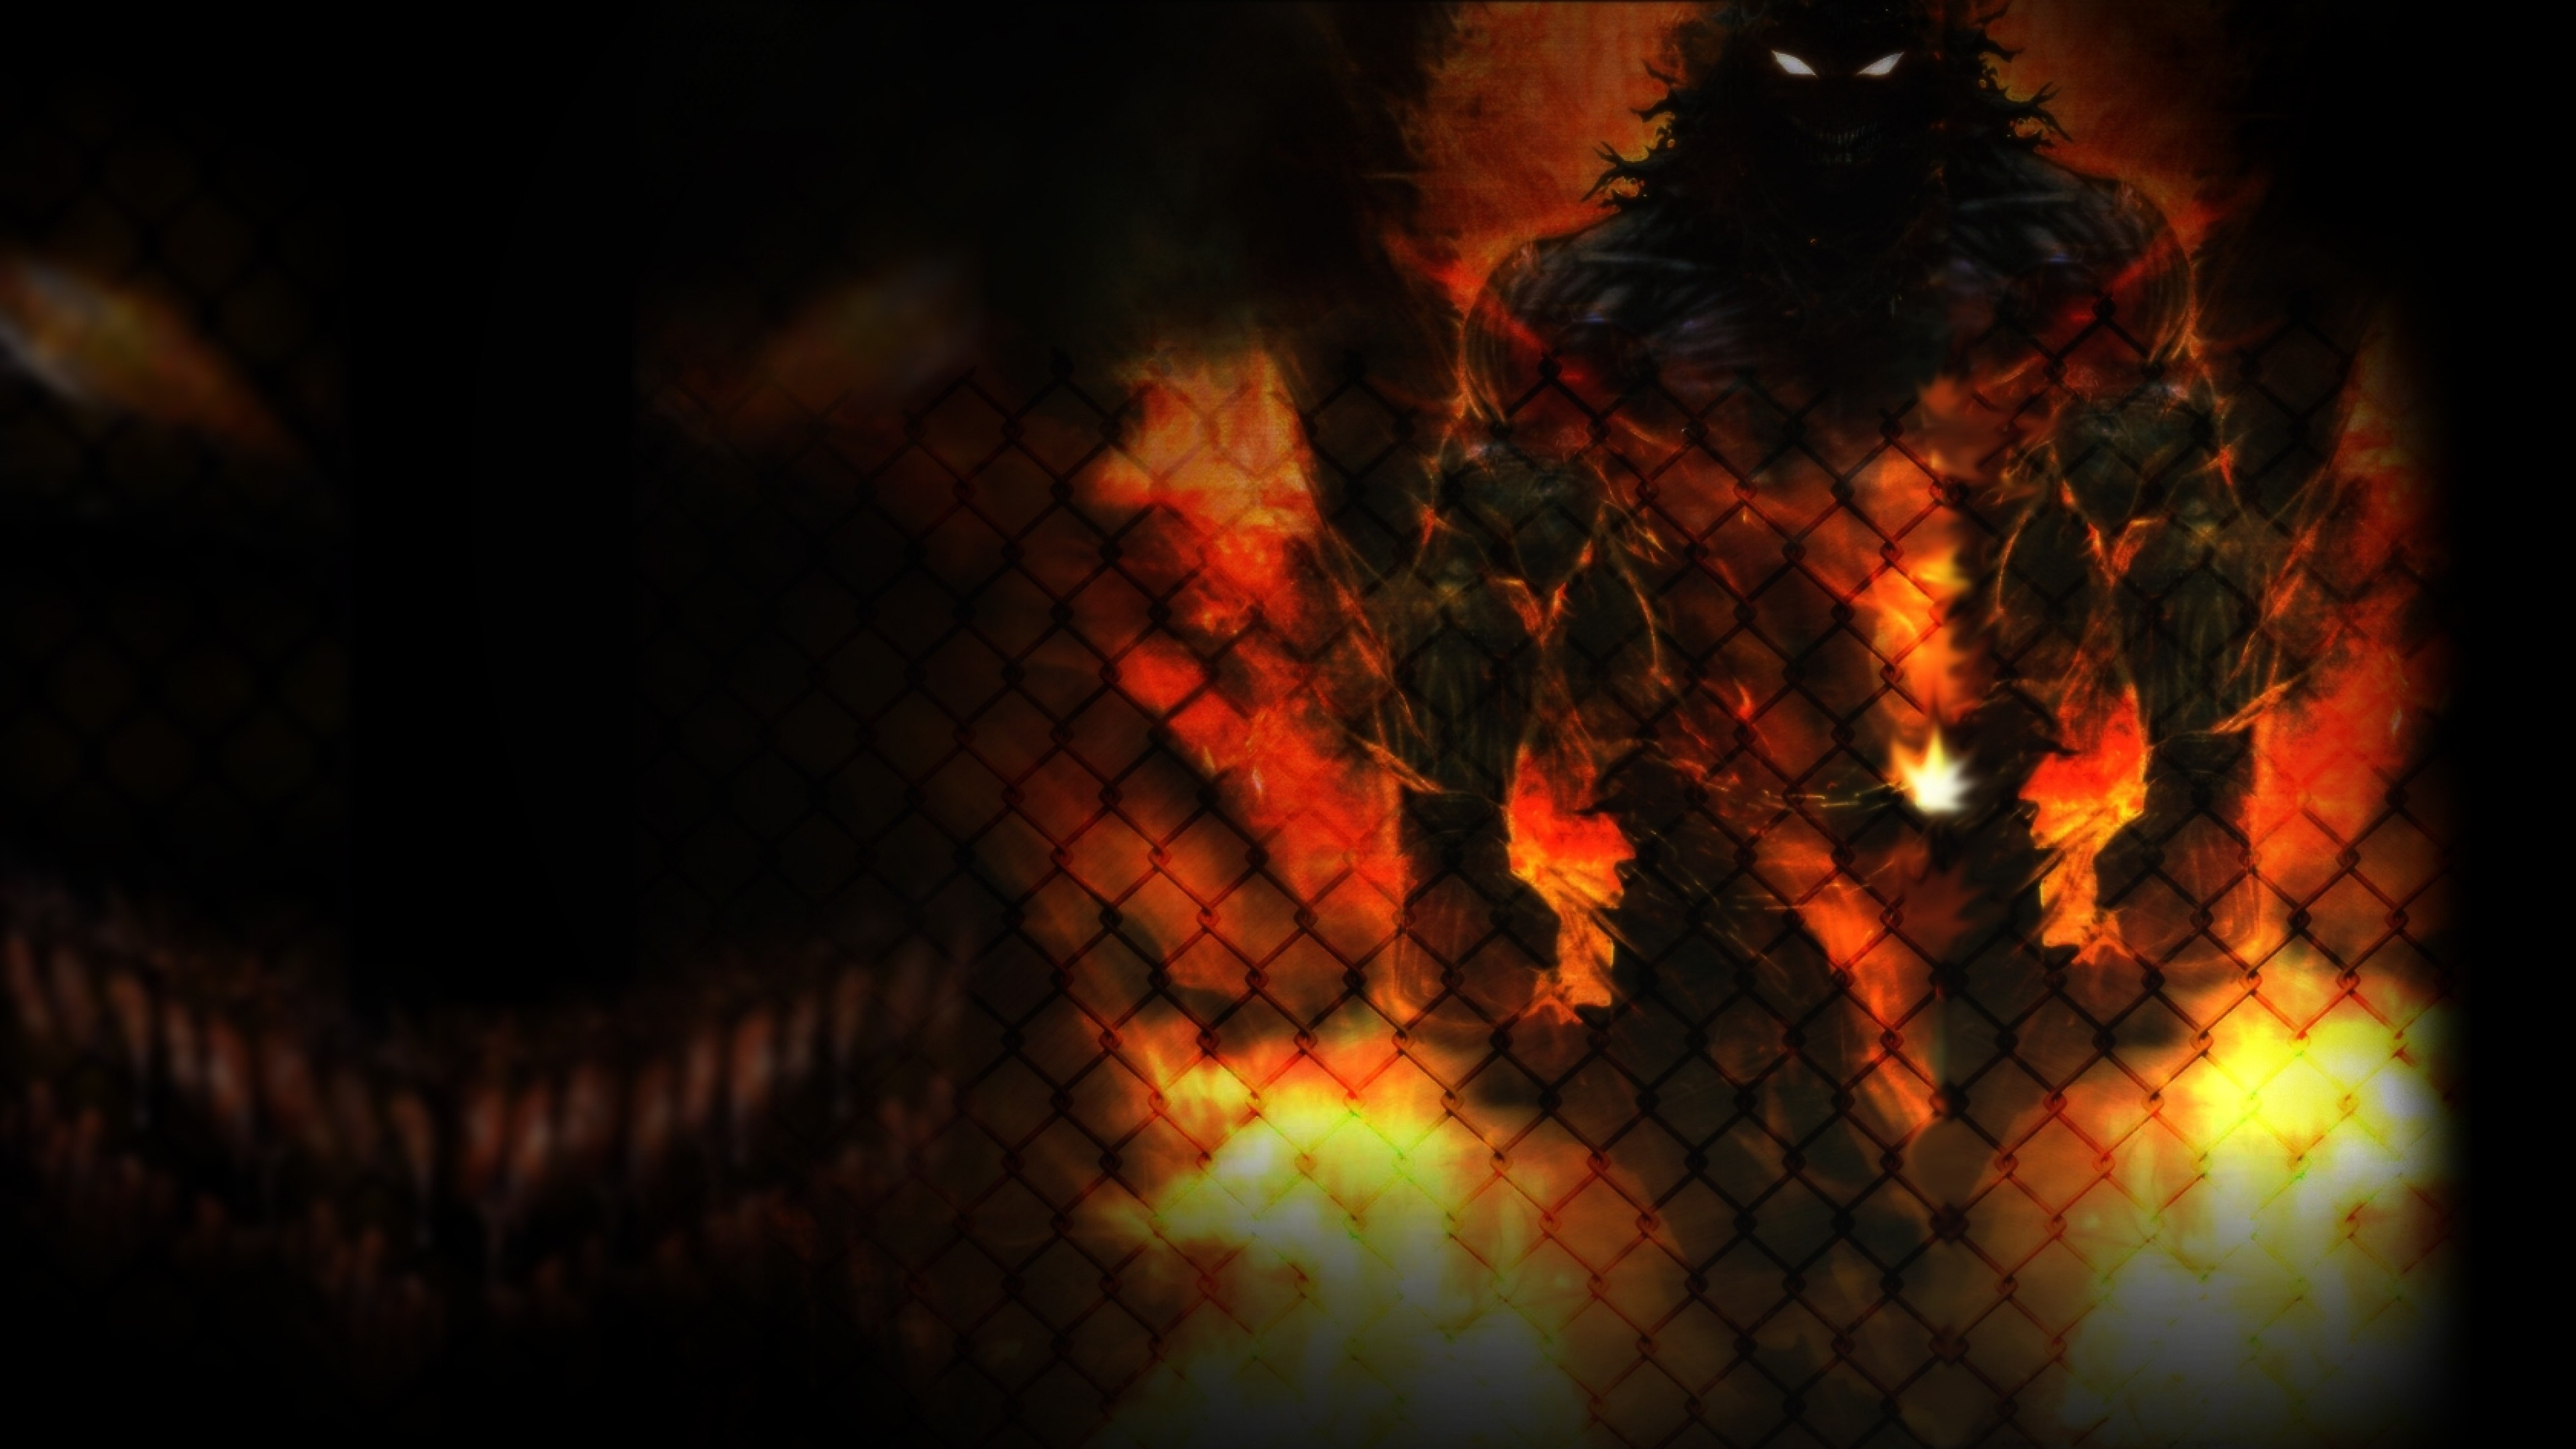 Wallpaper disturbed, monster, animal, fire, net